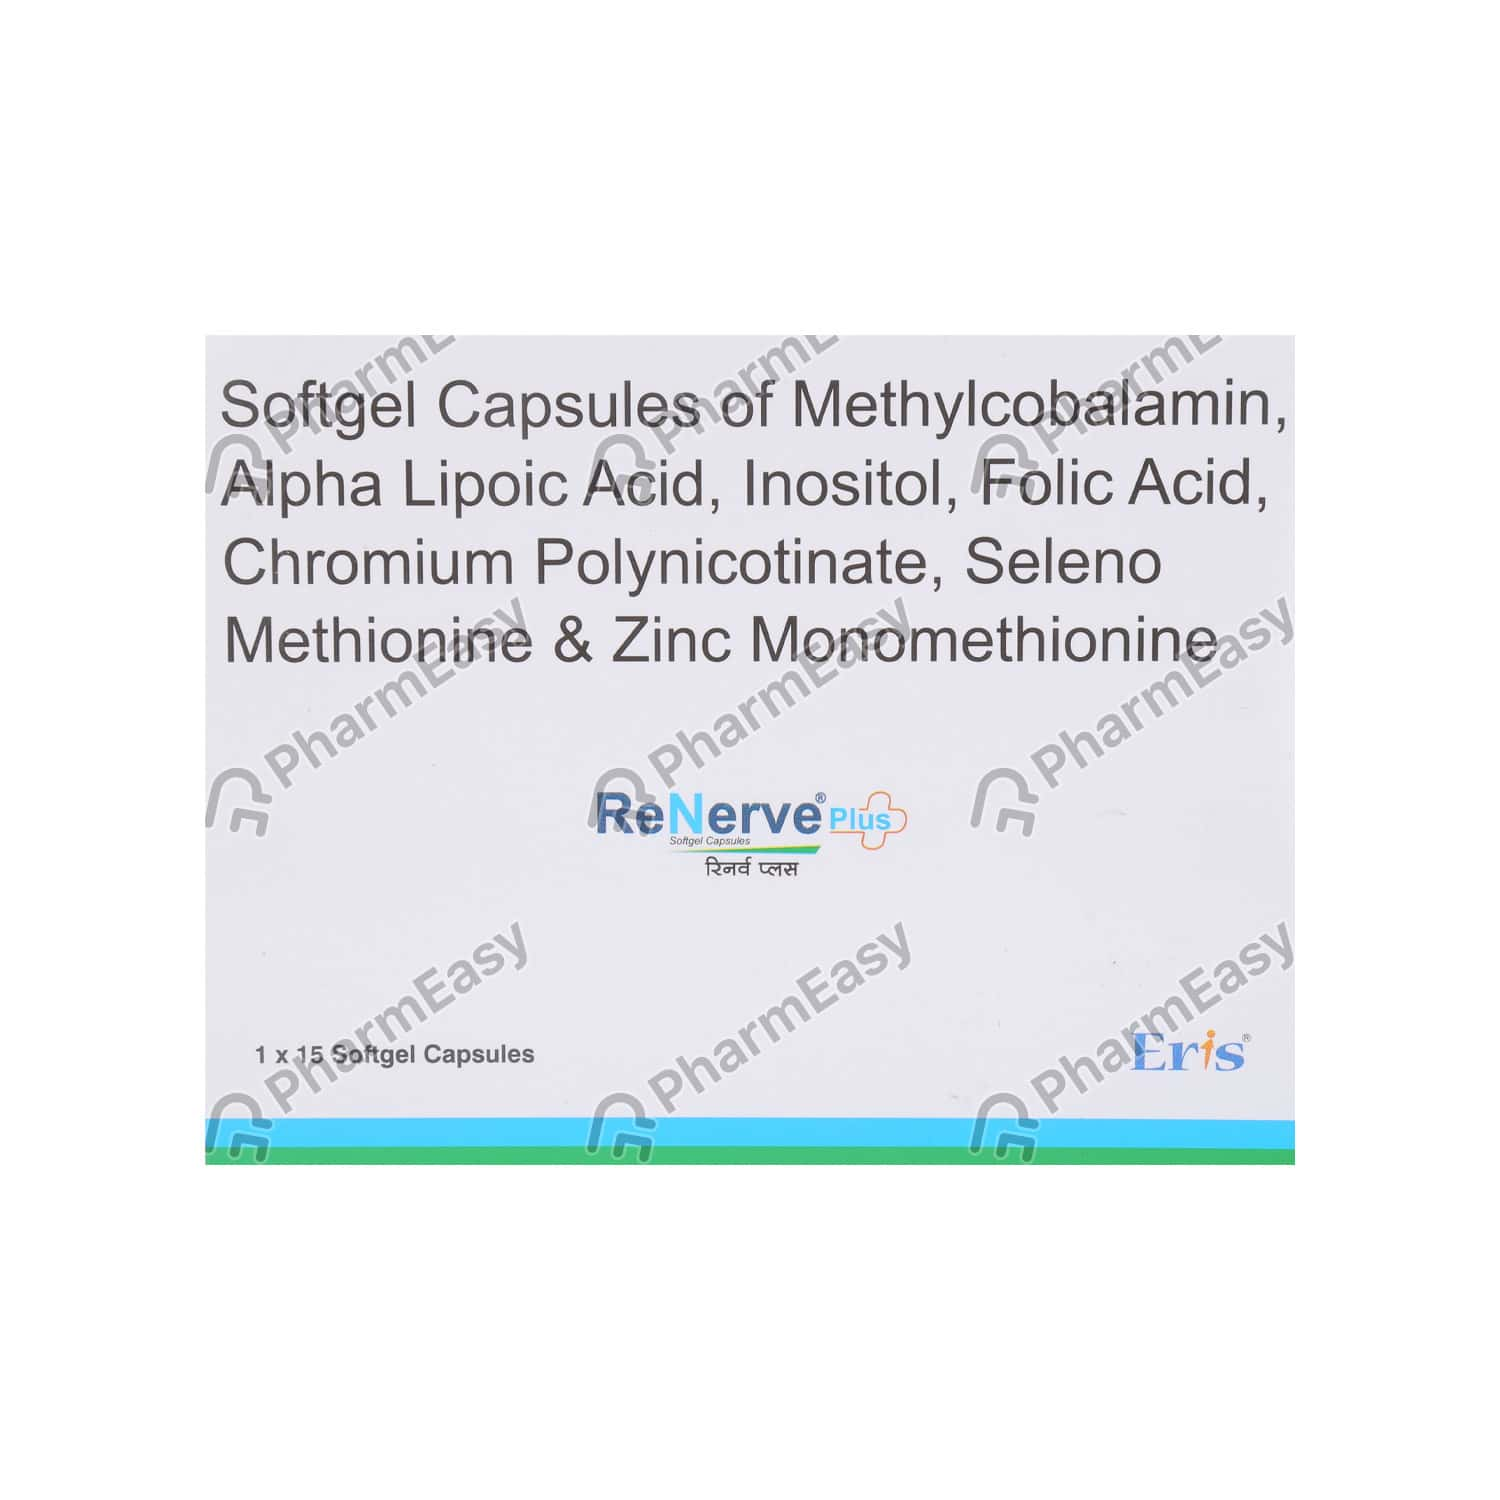 Renerve Plus Strip Of 15 Capsules